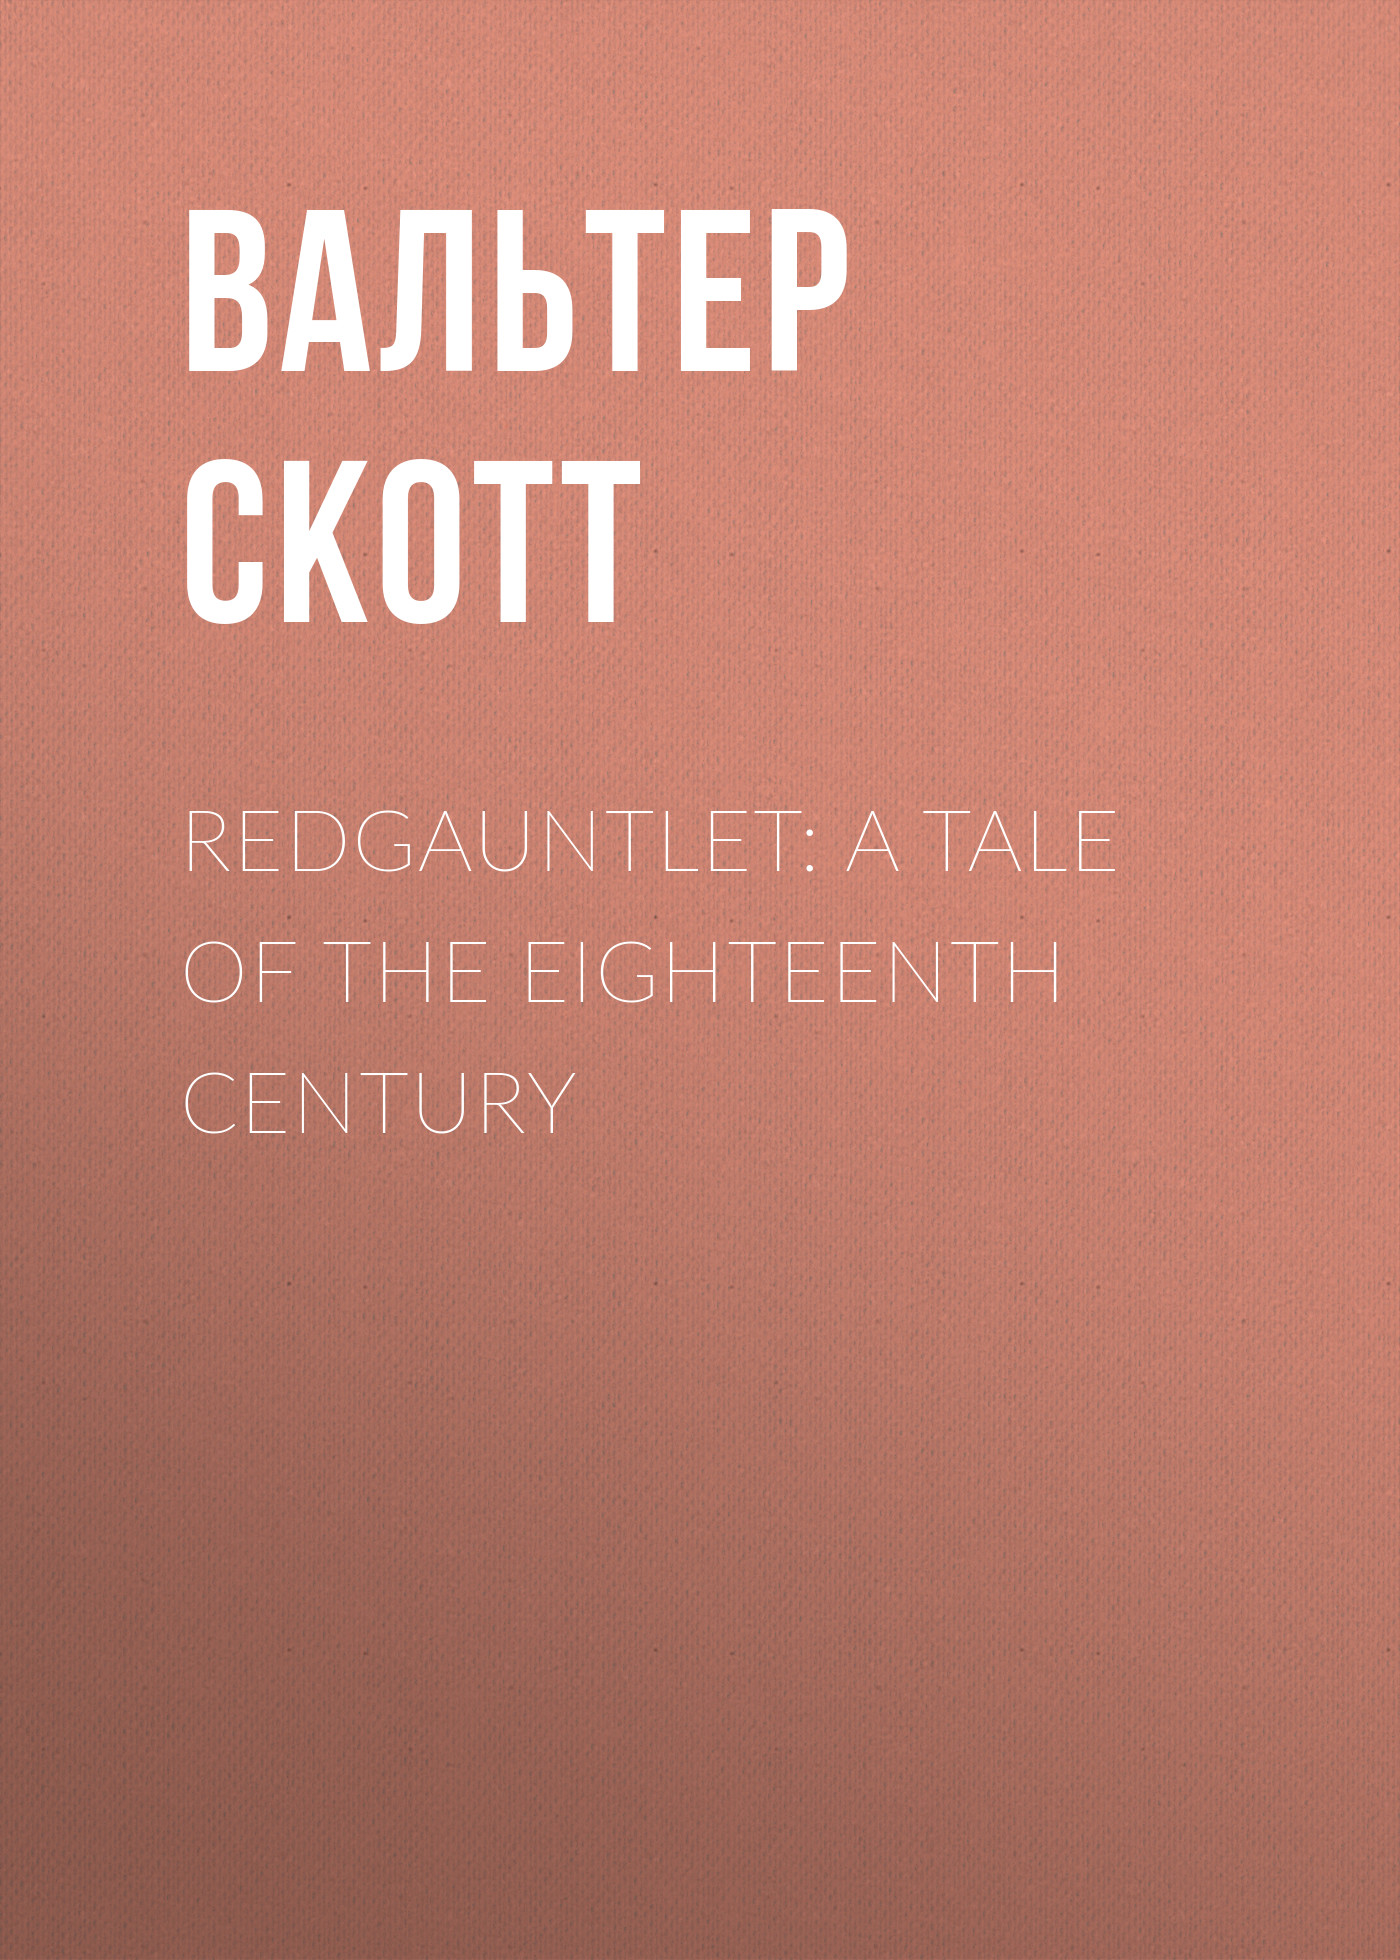 Redgauntlet: A Tale Of The Eighteenth Century